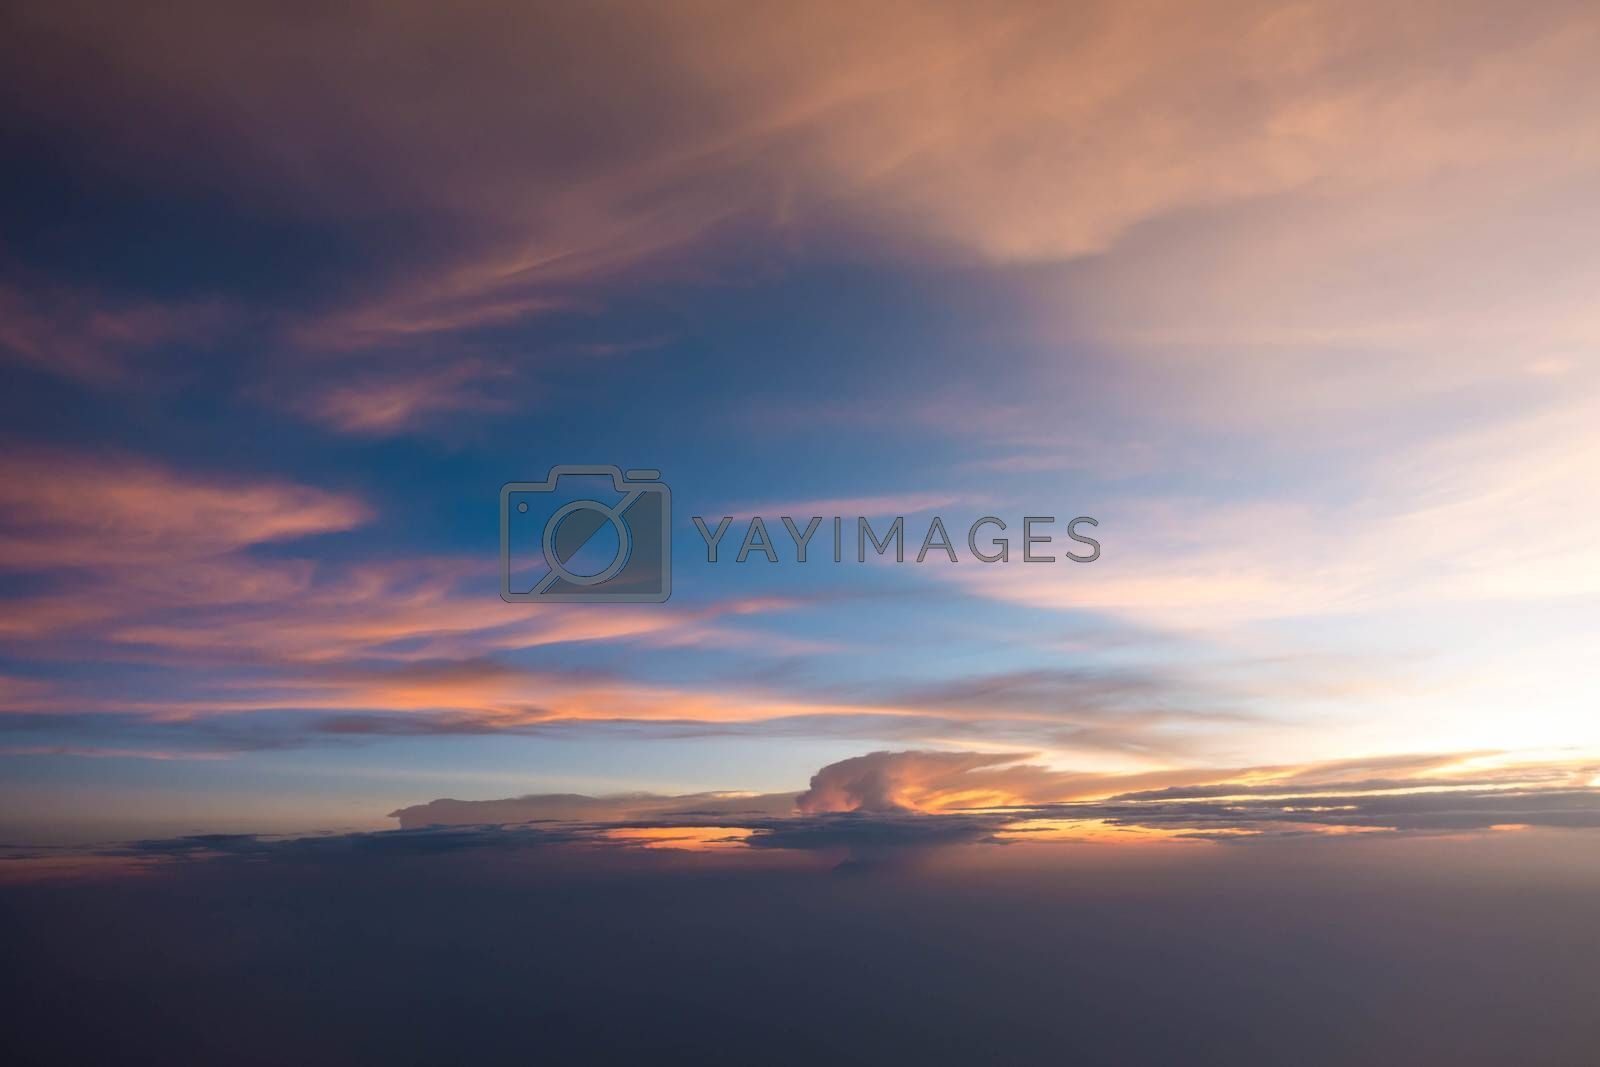 Sunset sky during twilight from airplane window